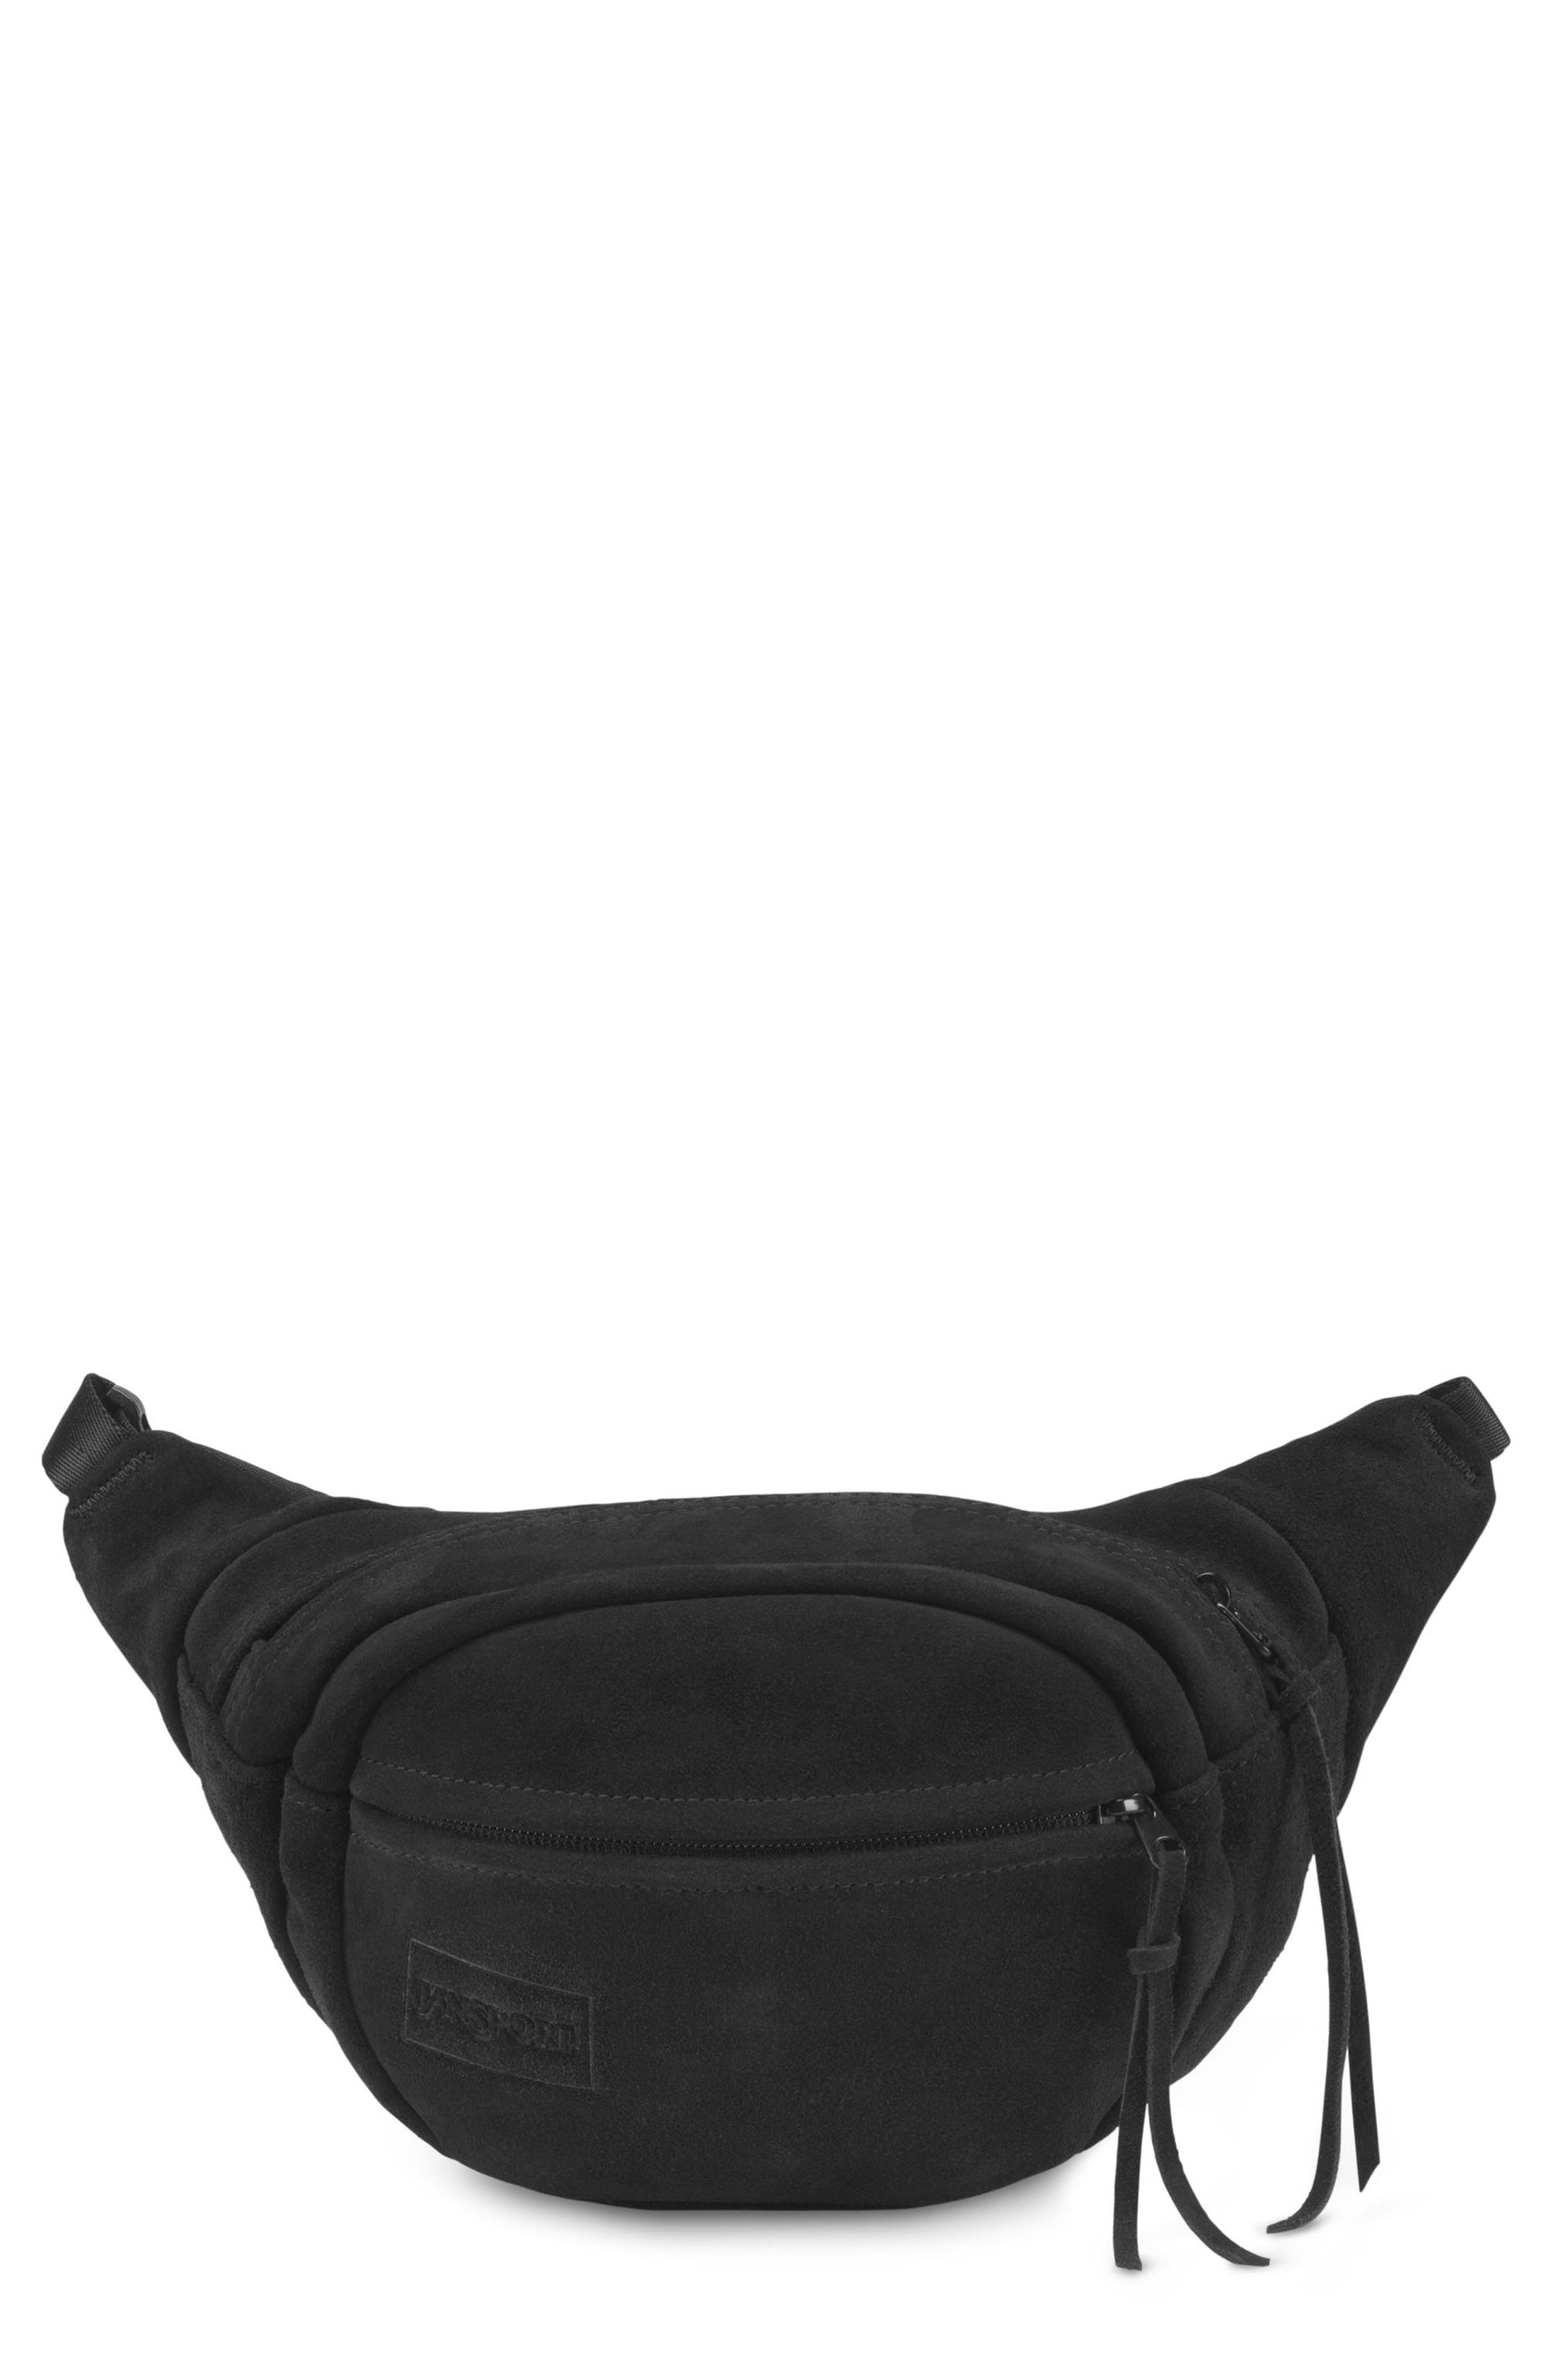 JANSPORT Desert Collection Fanny Pack - Black